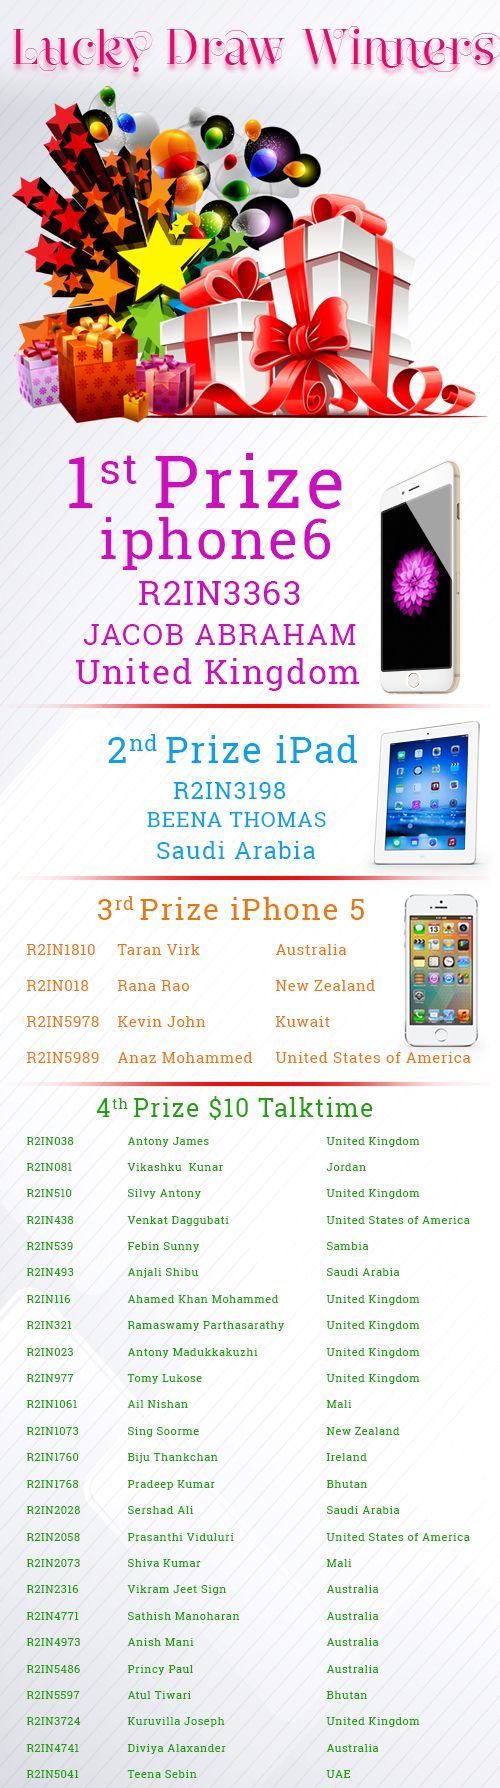 Lucky Draw Winners..  Find out if you're in the list or not